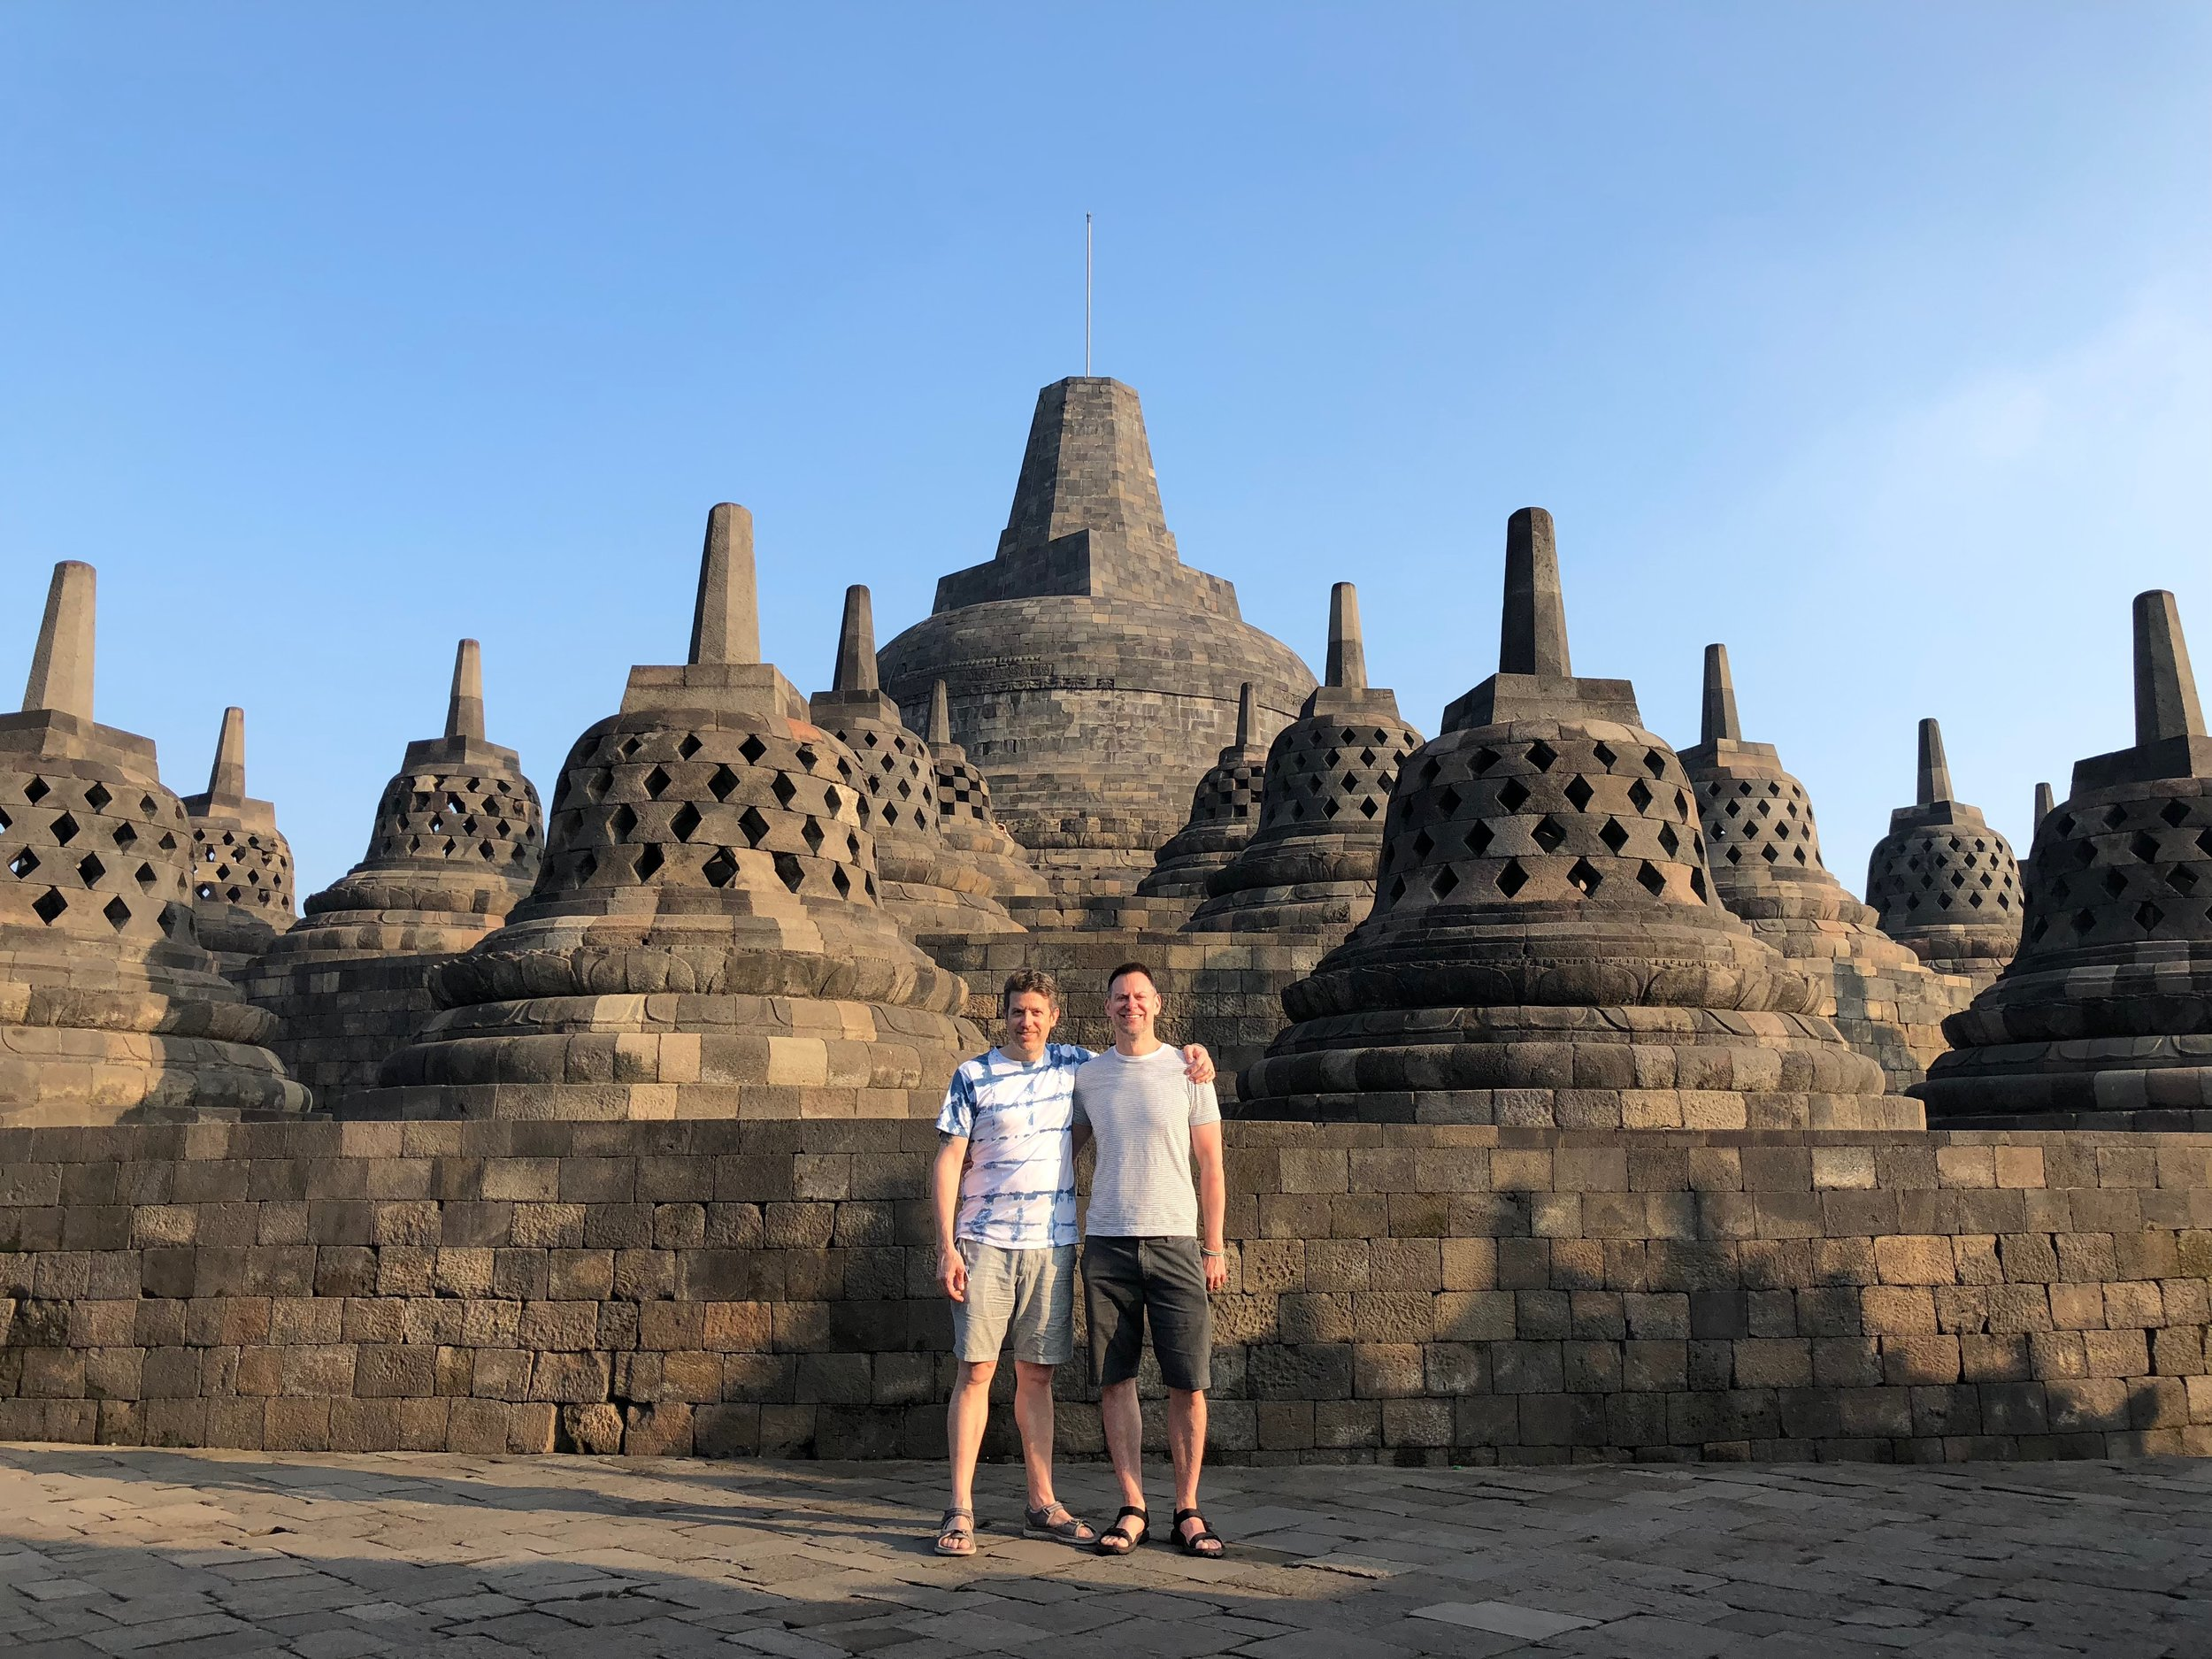 Wally and Duke love a good temple — and Borobudur is like no other